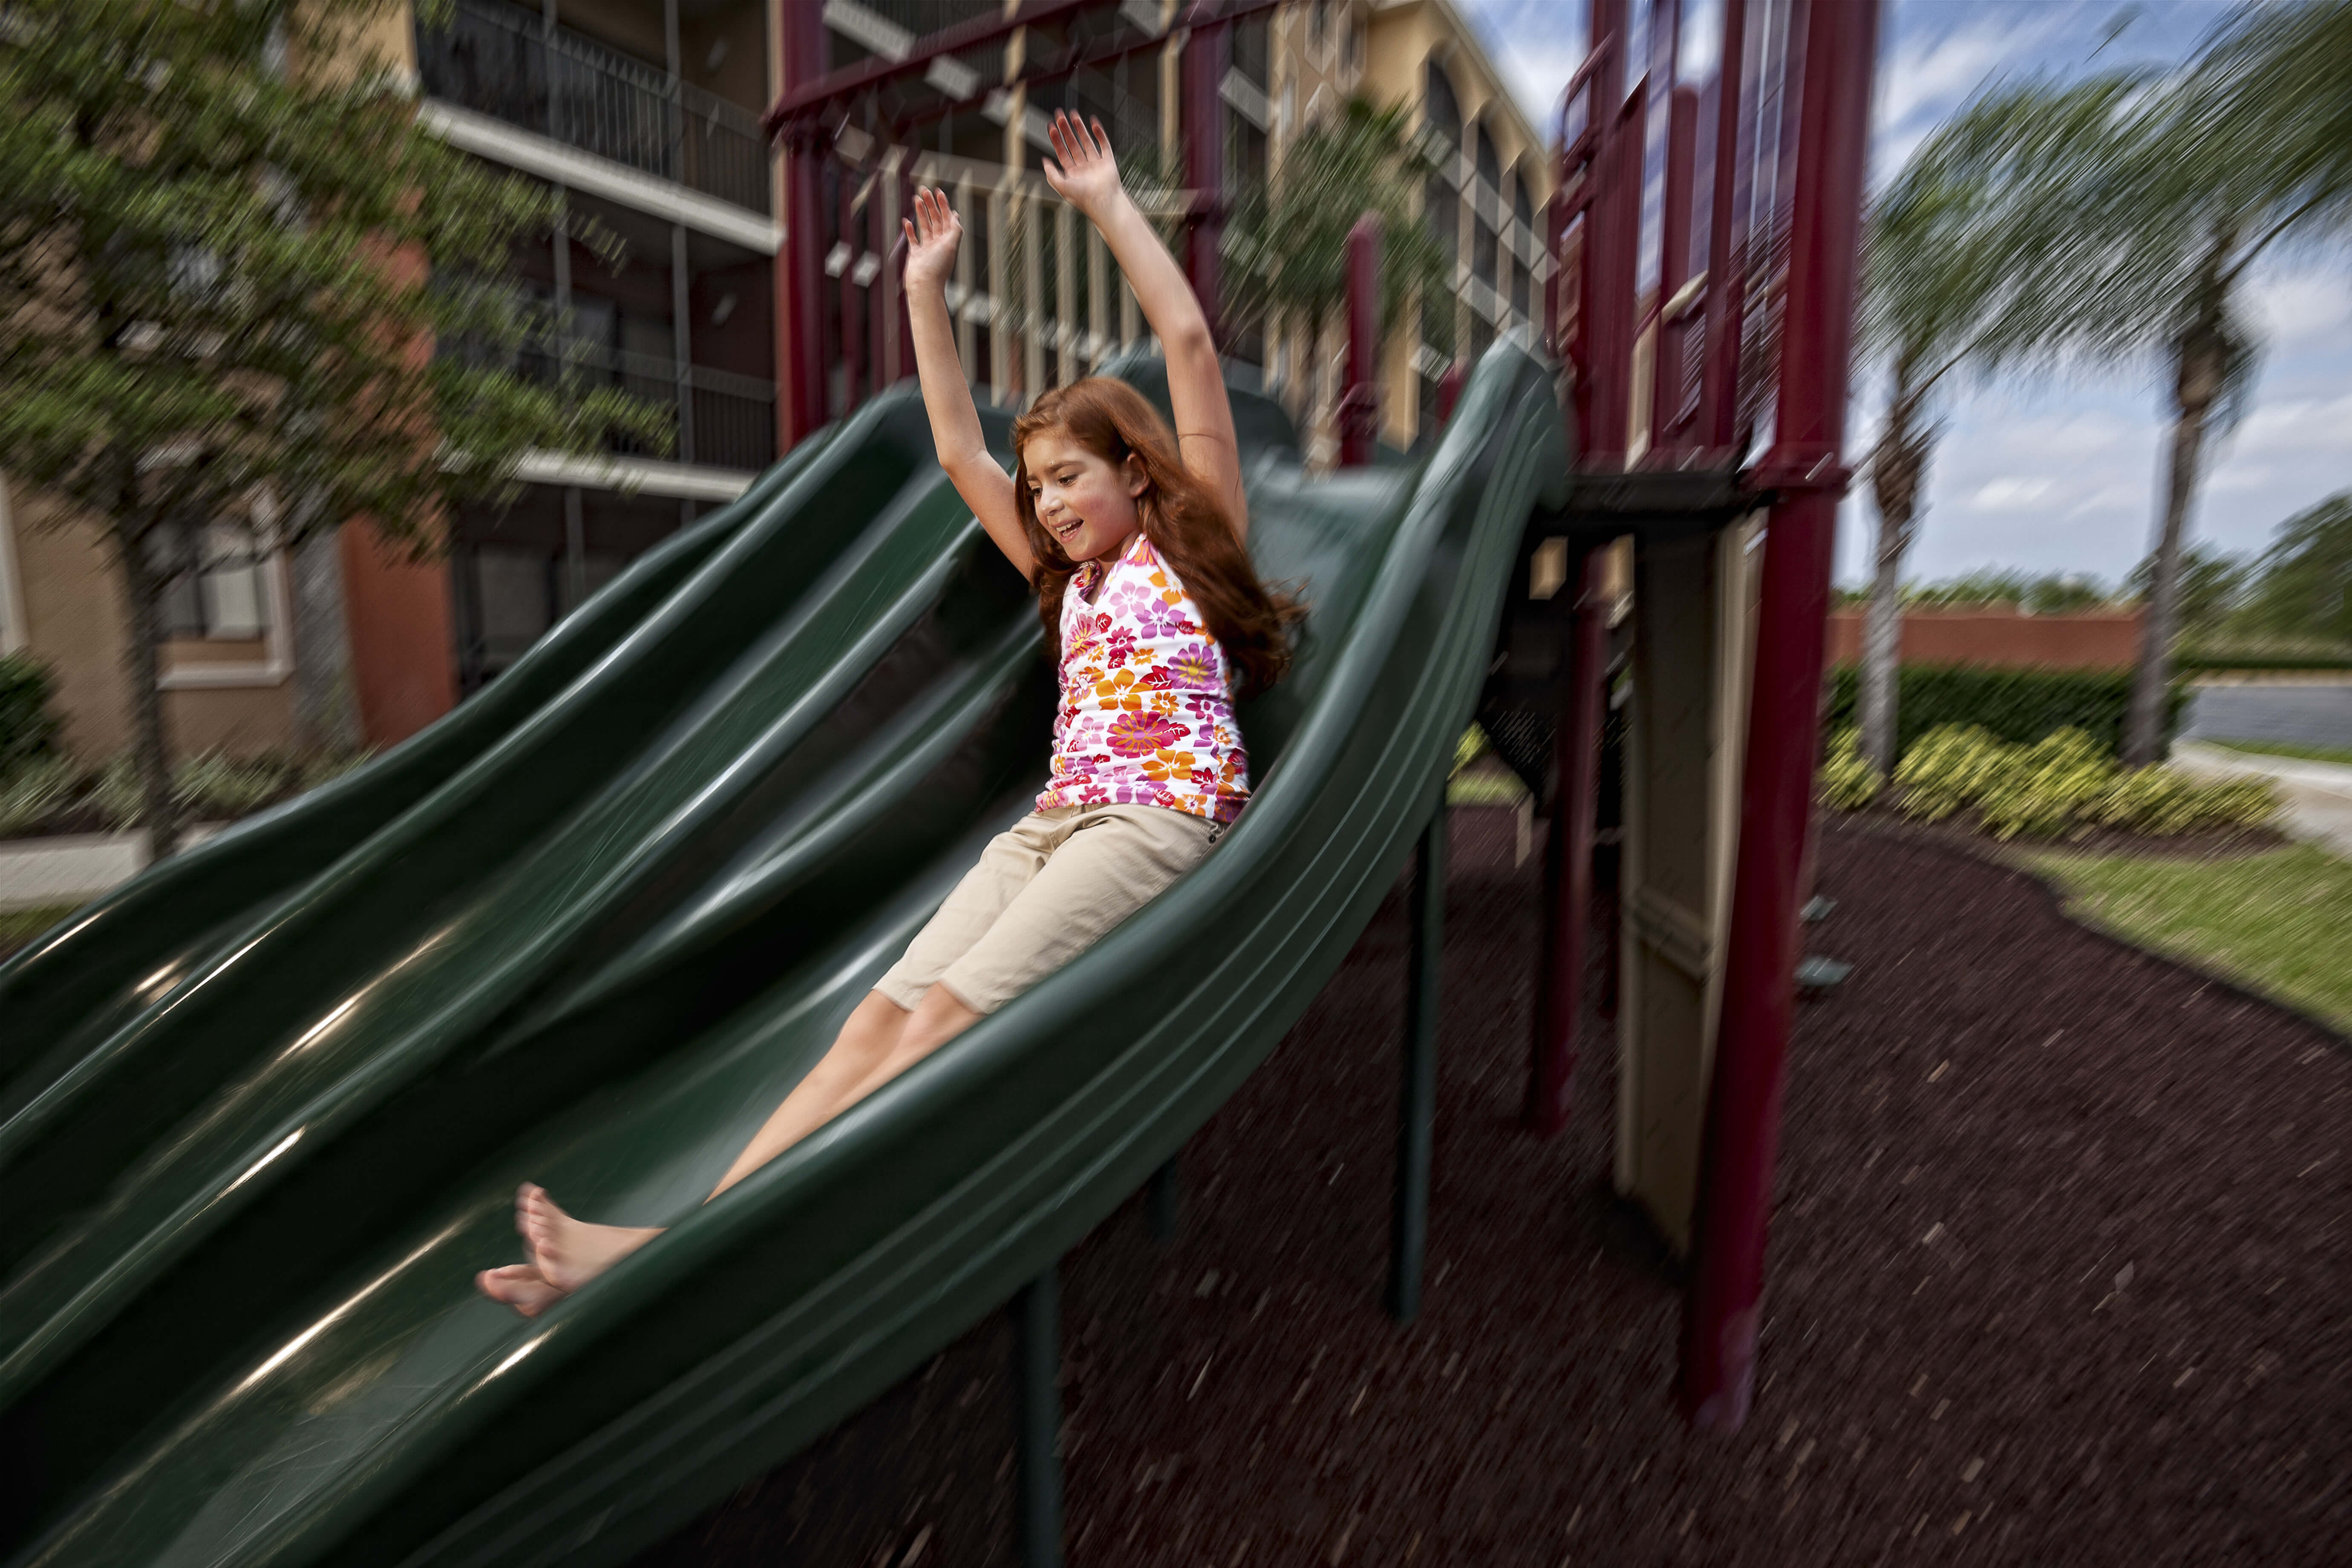 Kid on slide at Playground | Westgate Towers Resort | Westgate Resorts